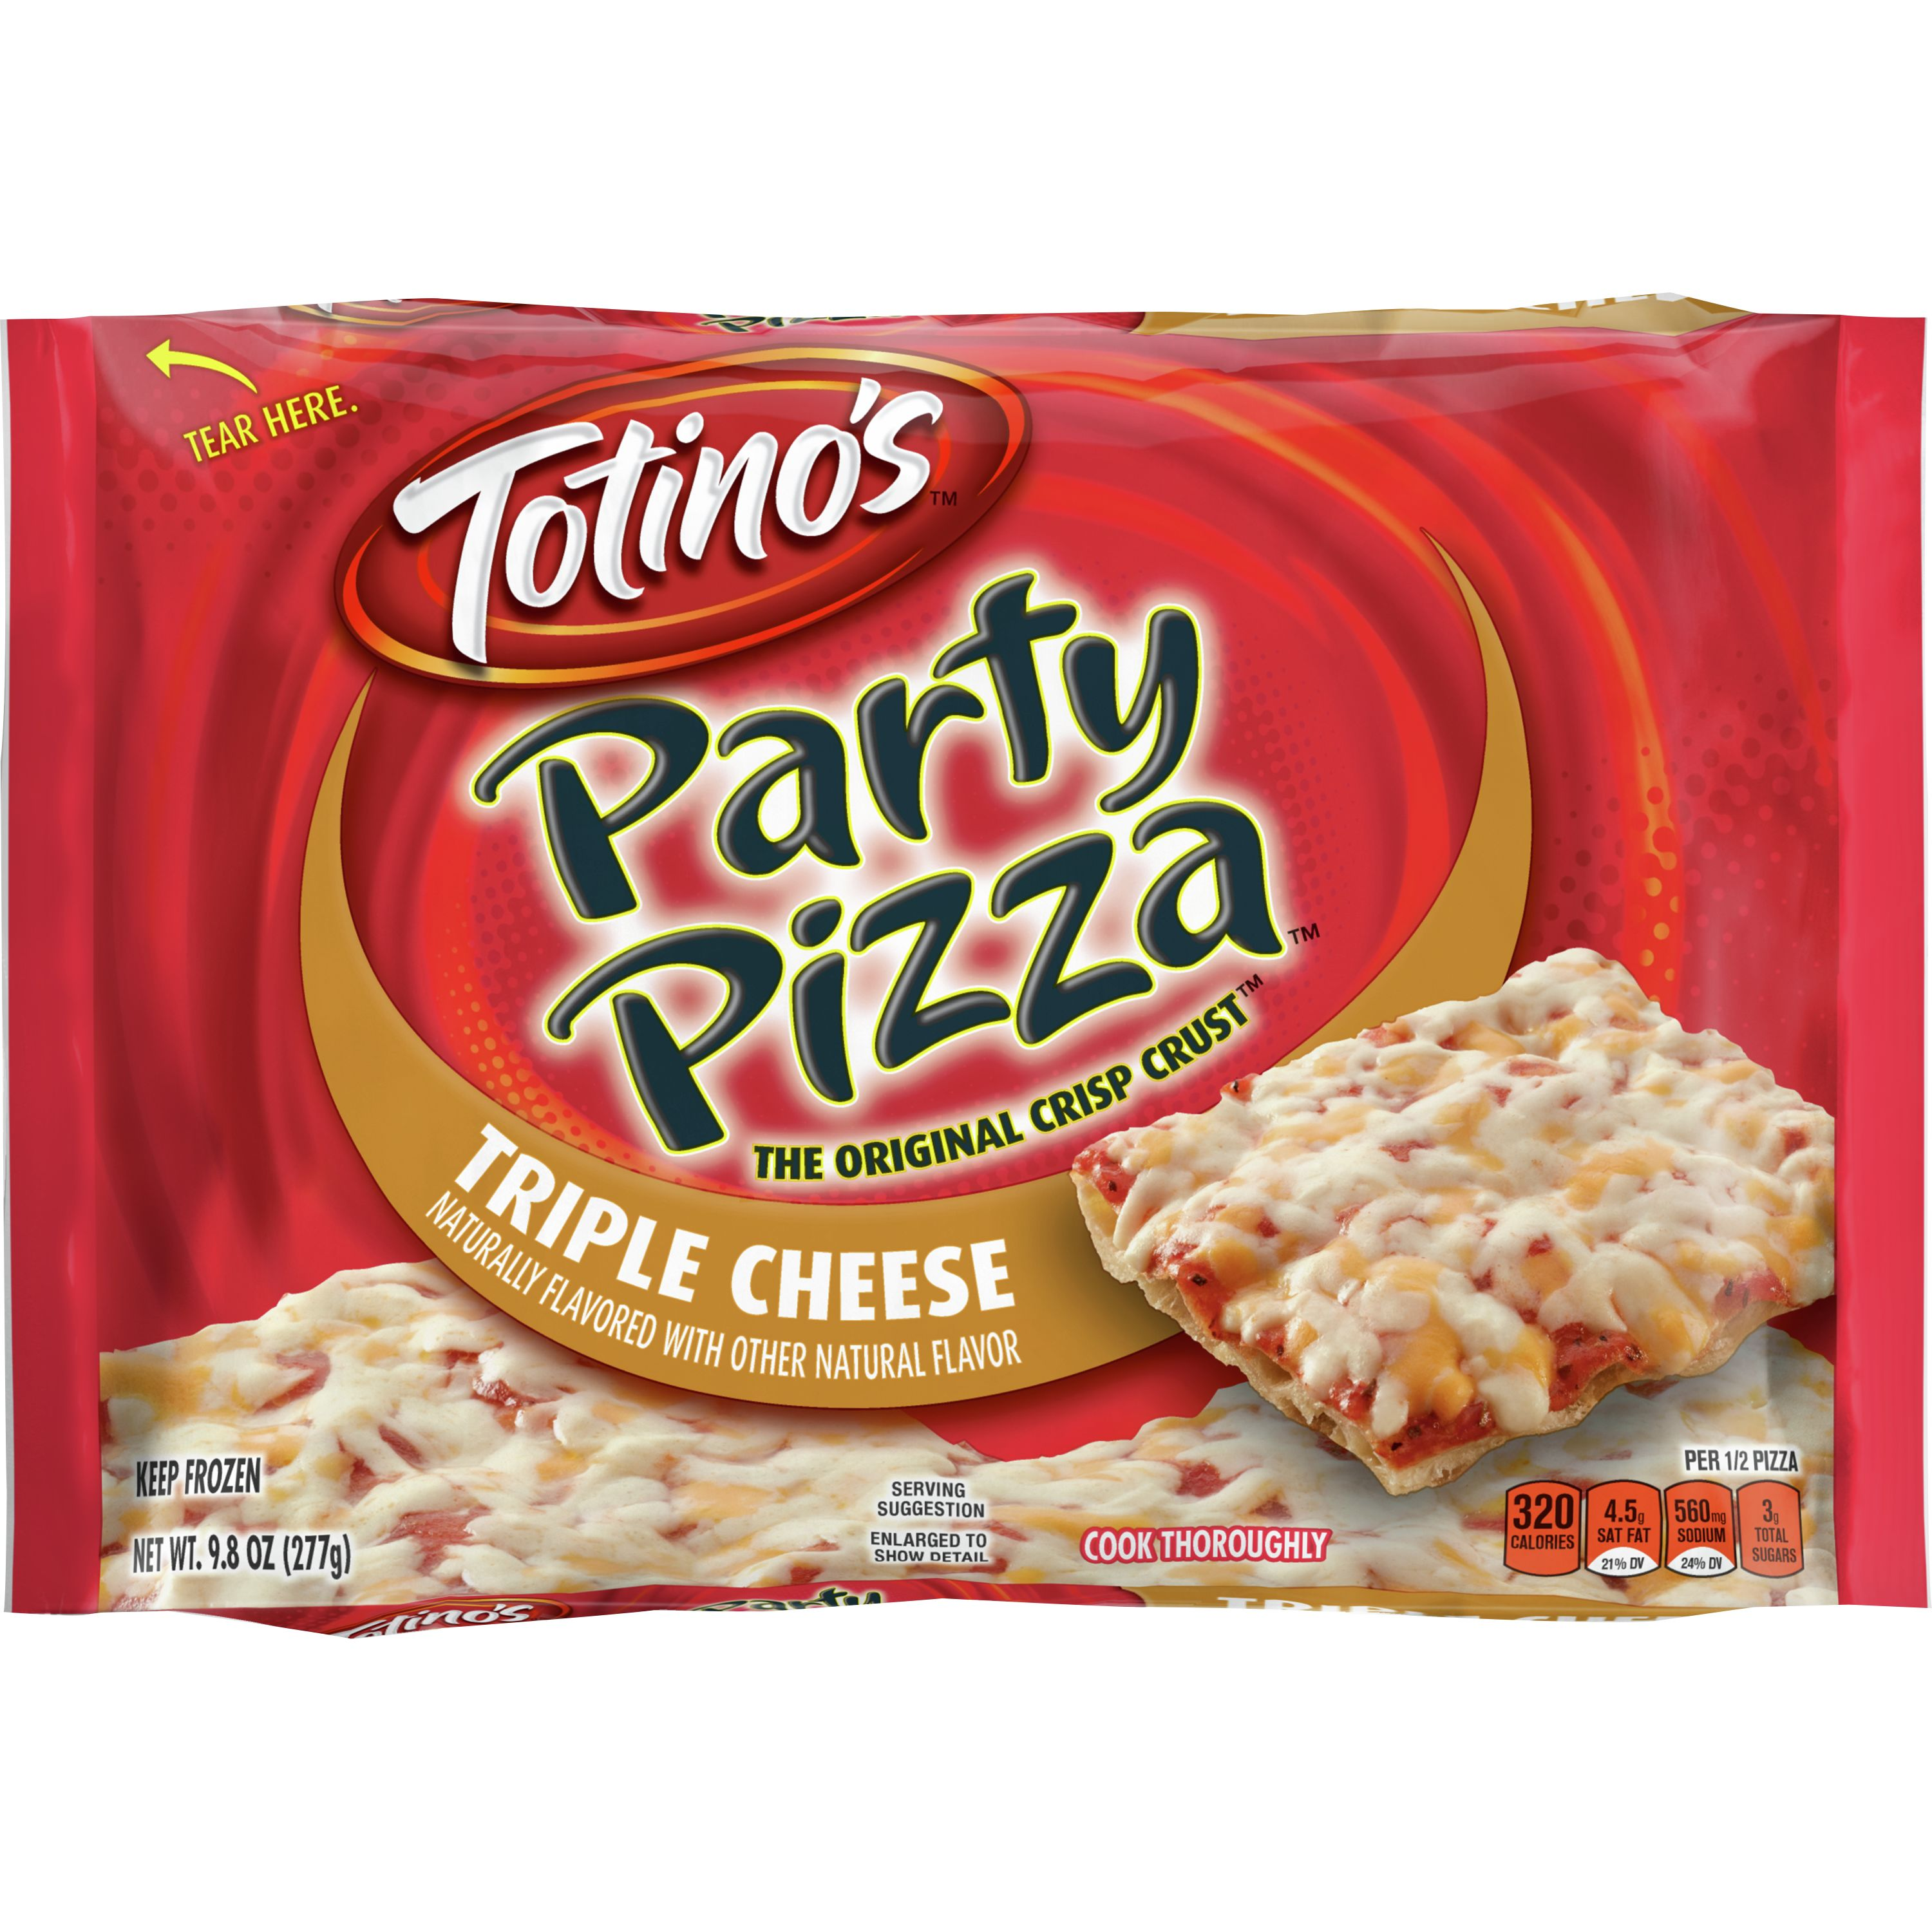 Totino's Triple Cheese Party Pizza, 9.8 oz